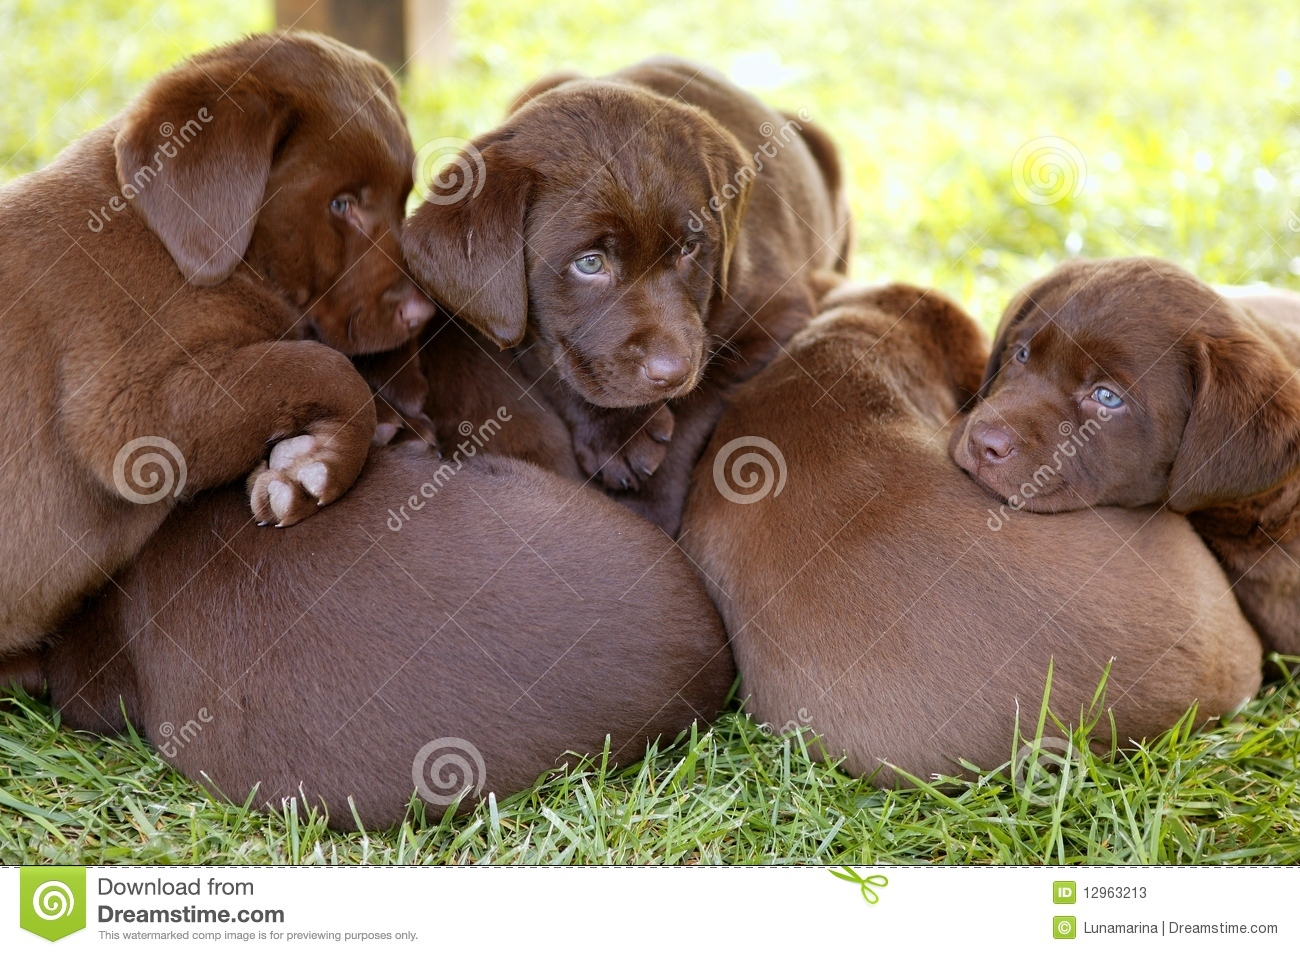 589 Labrador Litter Photos Free Royalty Free Stock Photos From Dreamstime